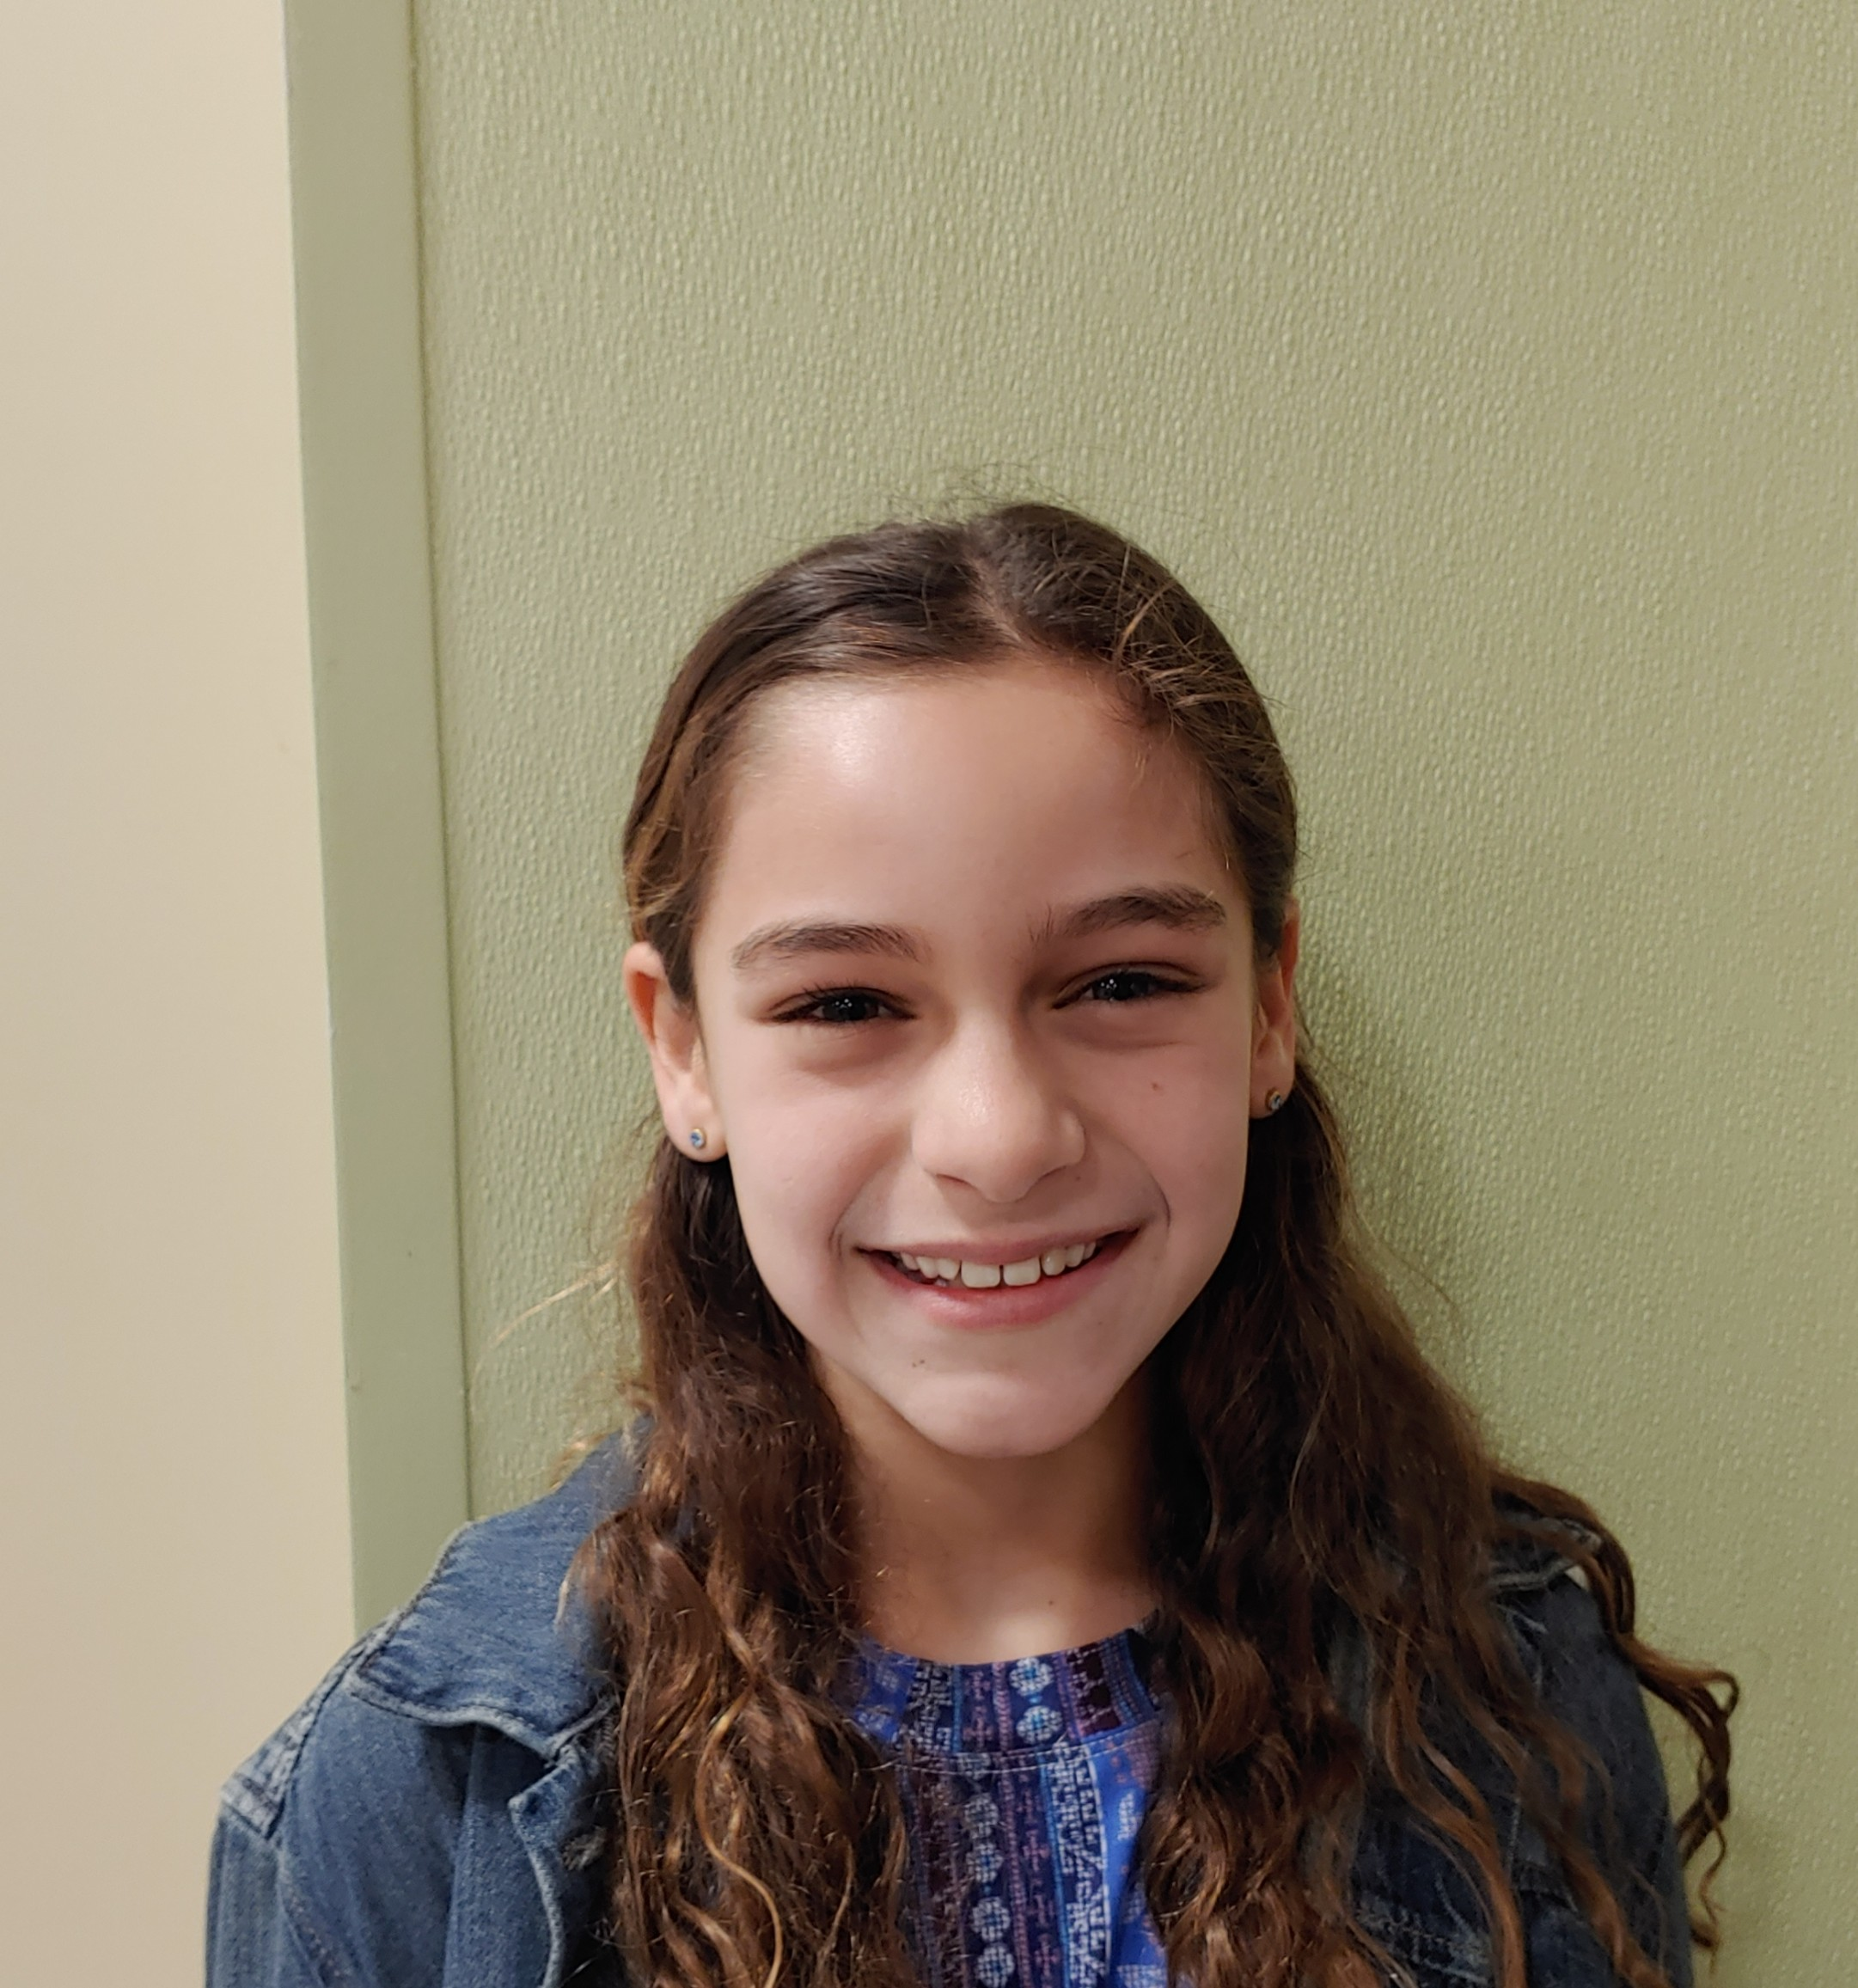 My favorite type of soup is chicken noodle because the way my mom makes it tastes amazing.  Kat, age 11  Daniel Island